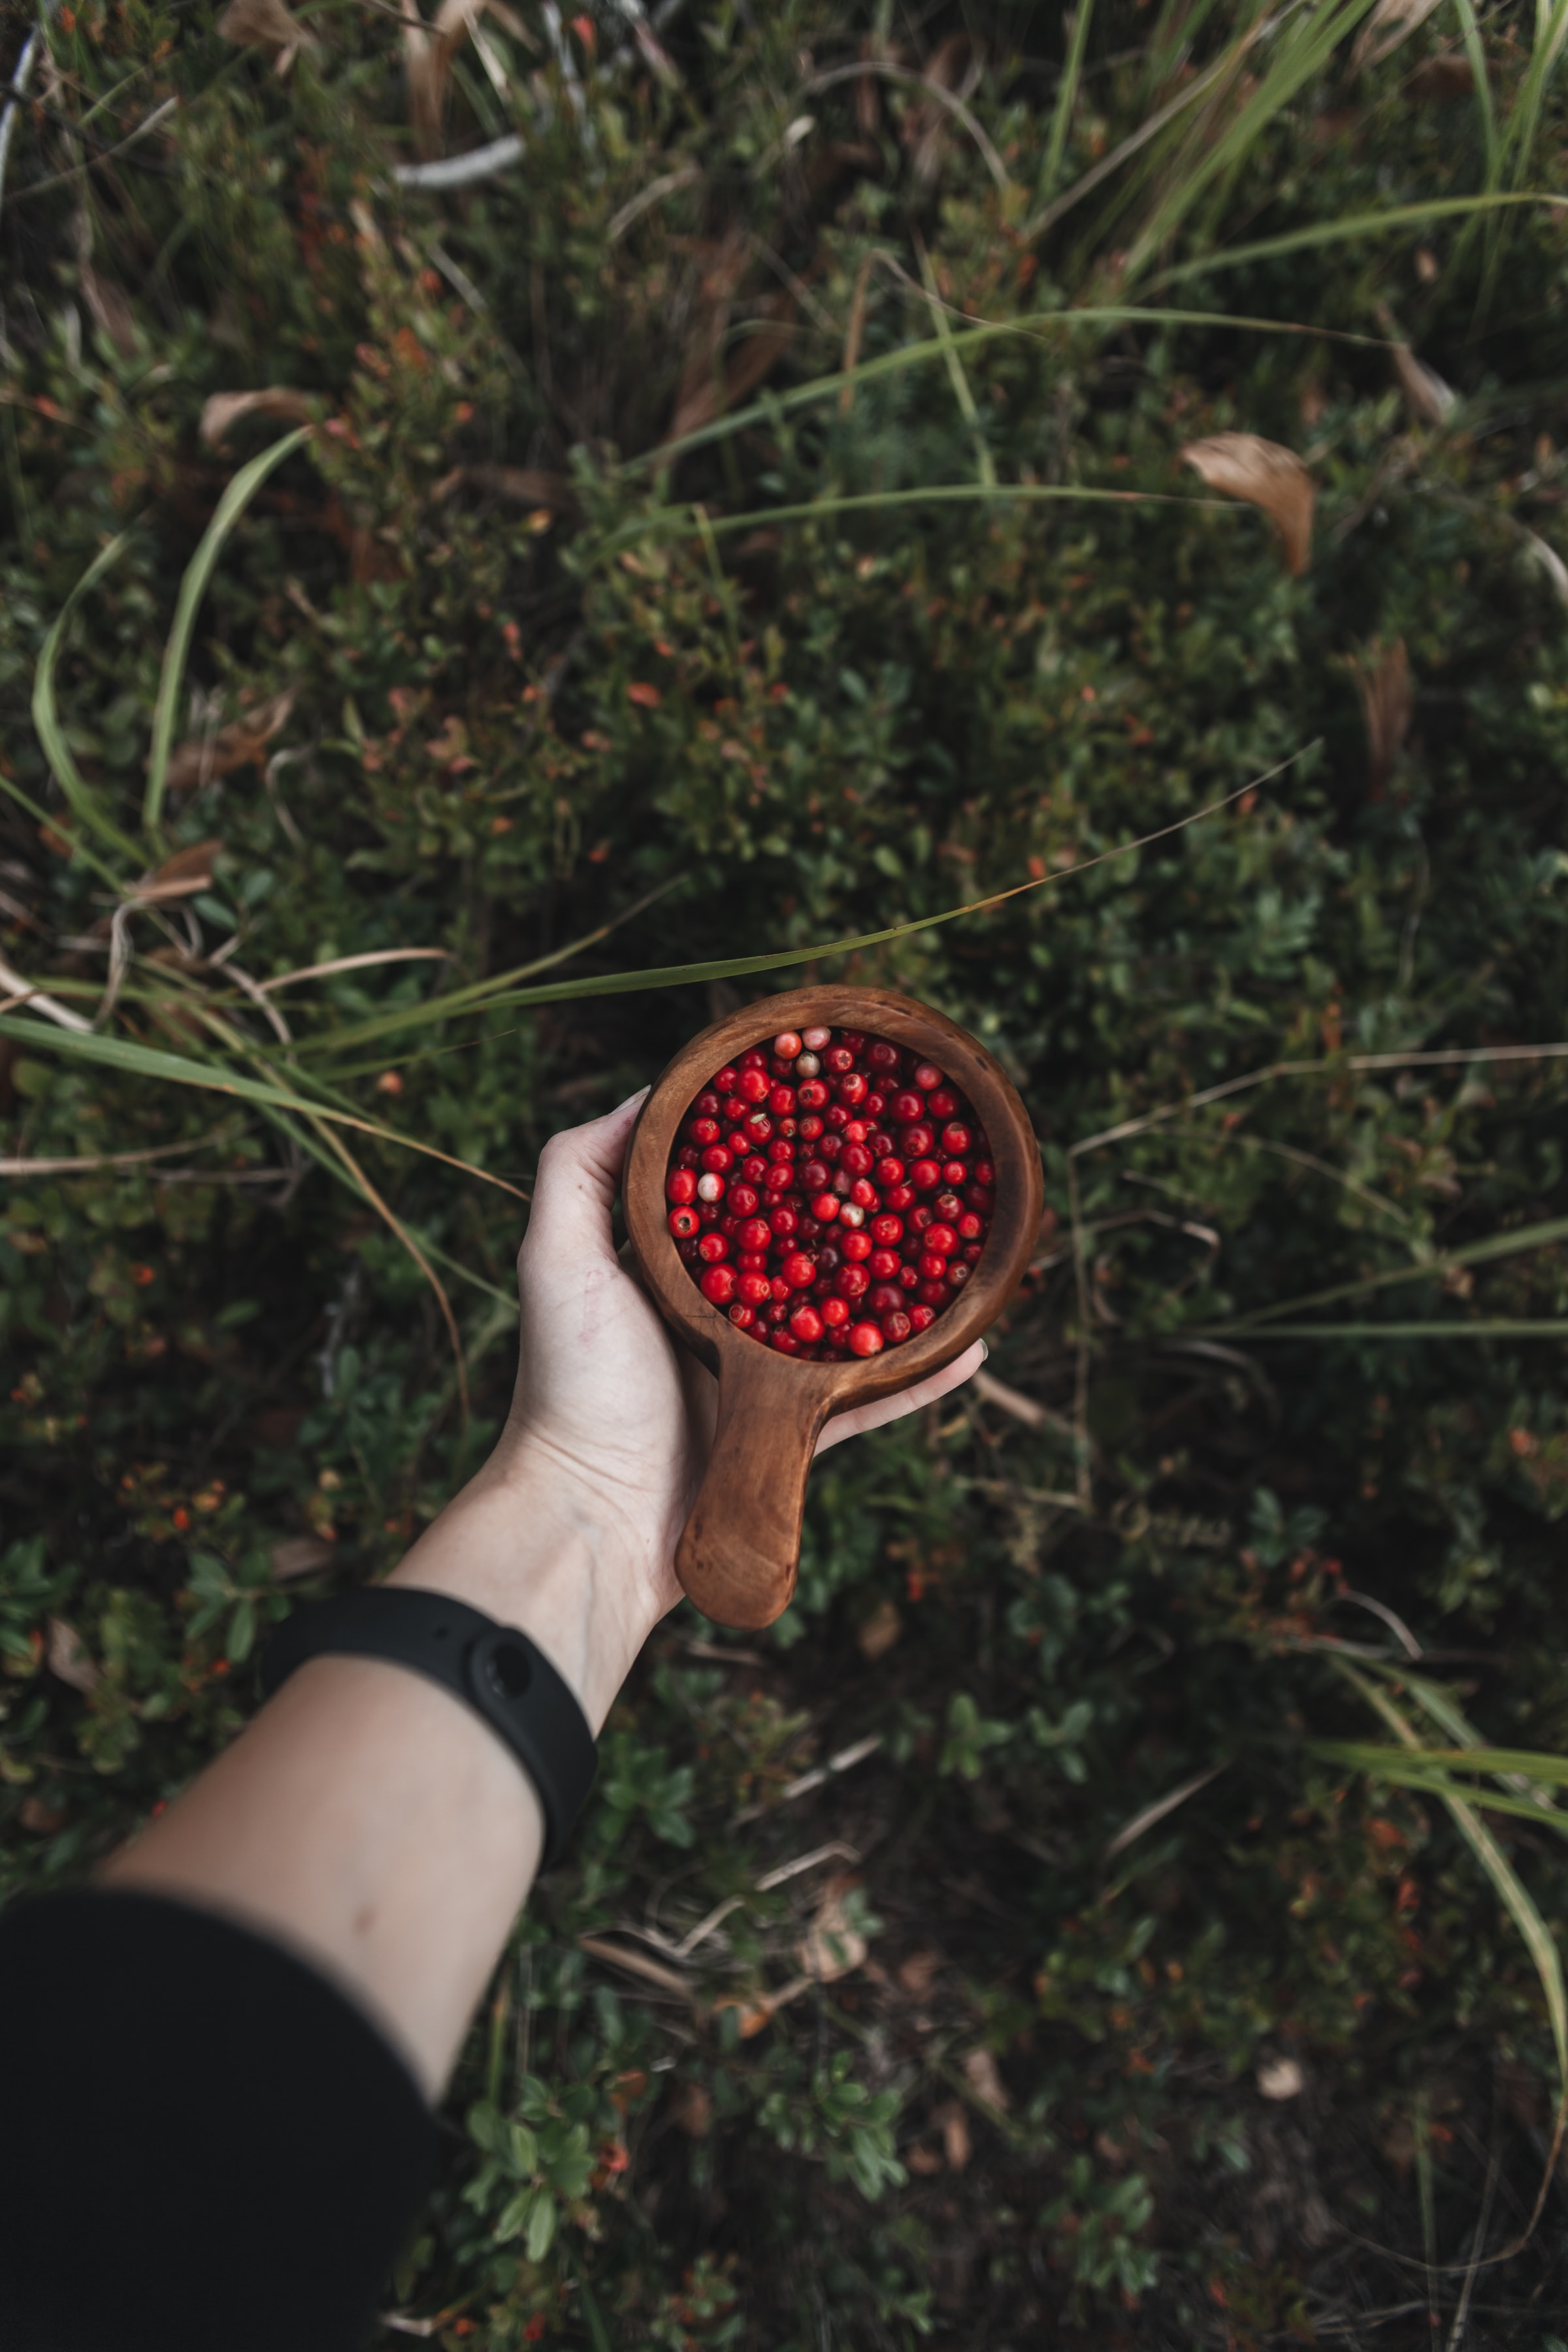 112872 download wallpaper Miscellanea, Miscellaneous, Lingonberry, Cowberry, Hand, Cup, Mug, Wood, Wooden, Berries screensavers and pictures for free